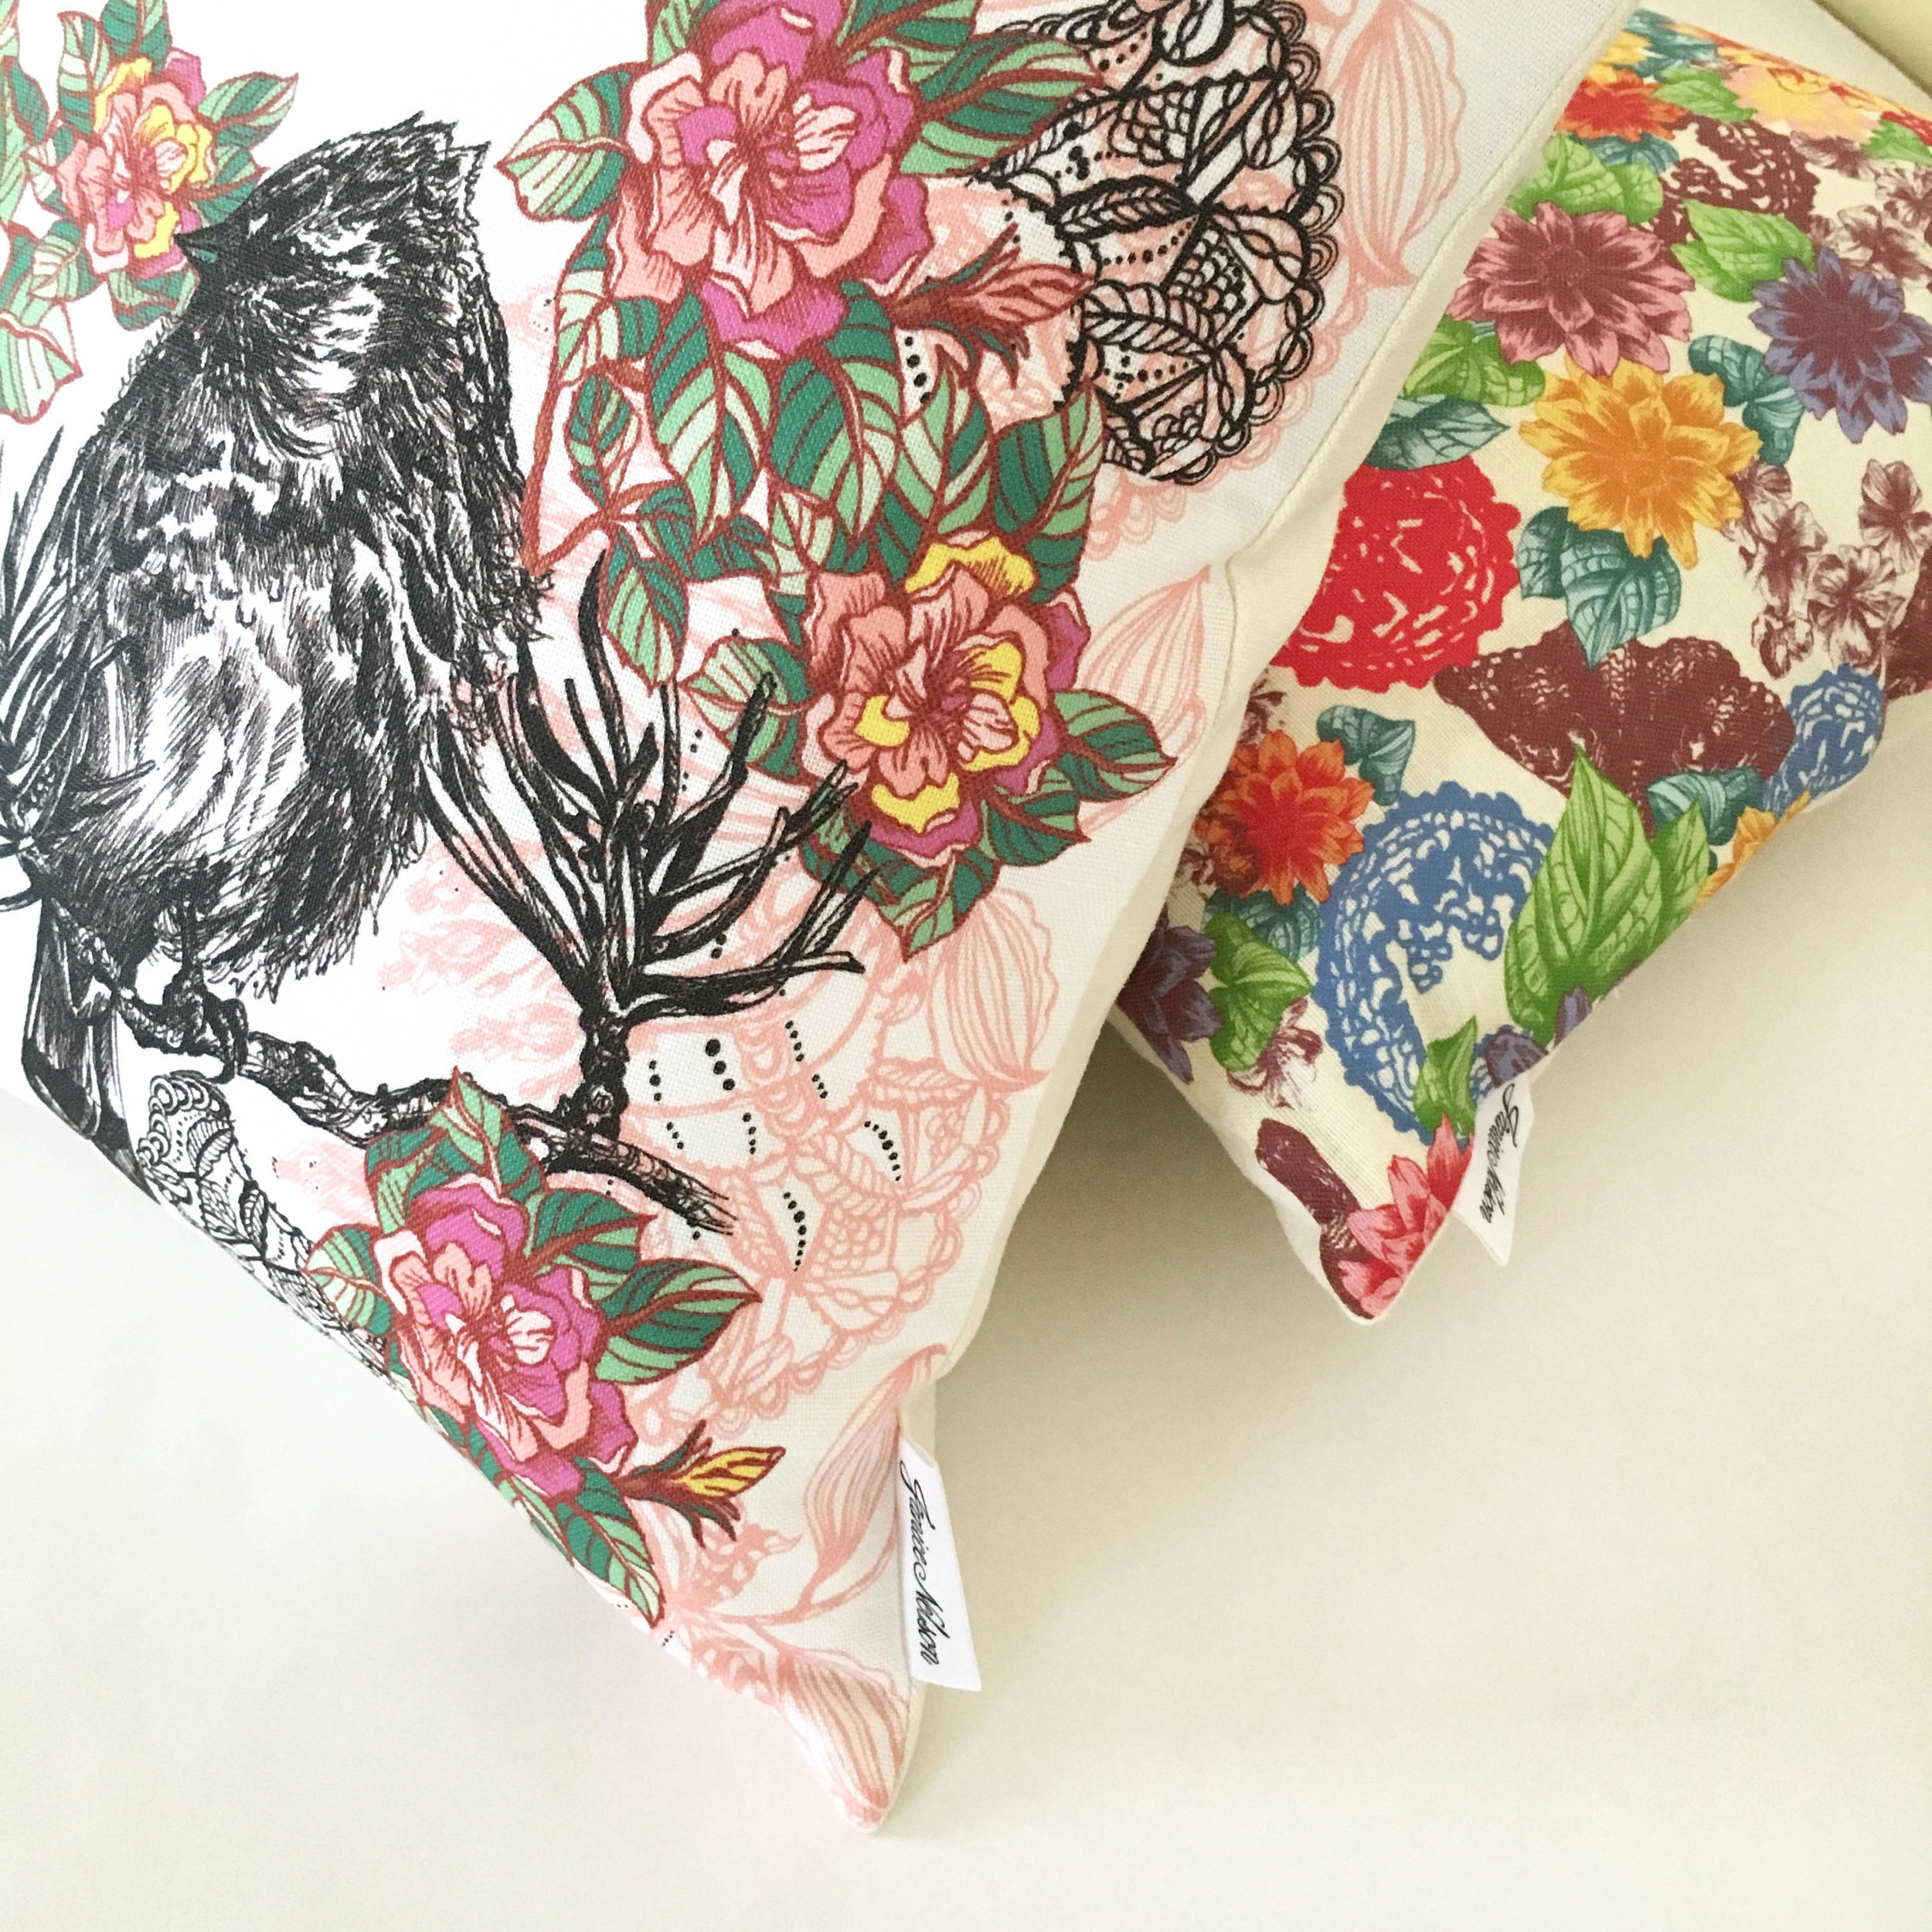 Janice Nelson's illustrative and detailed Acanthis bird pillow with bright pink and yellow flowers is shown sitting in front of a Zale pillow that is covered in an ornate allover floral pattern.